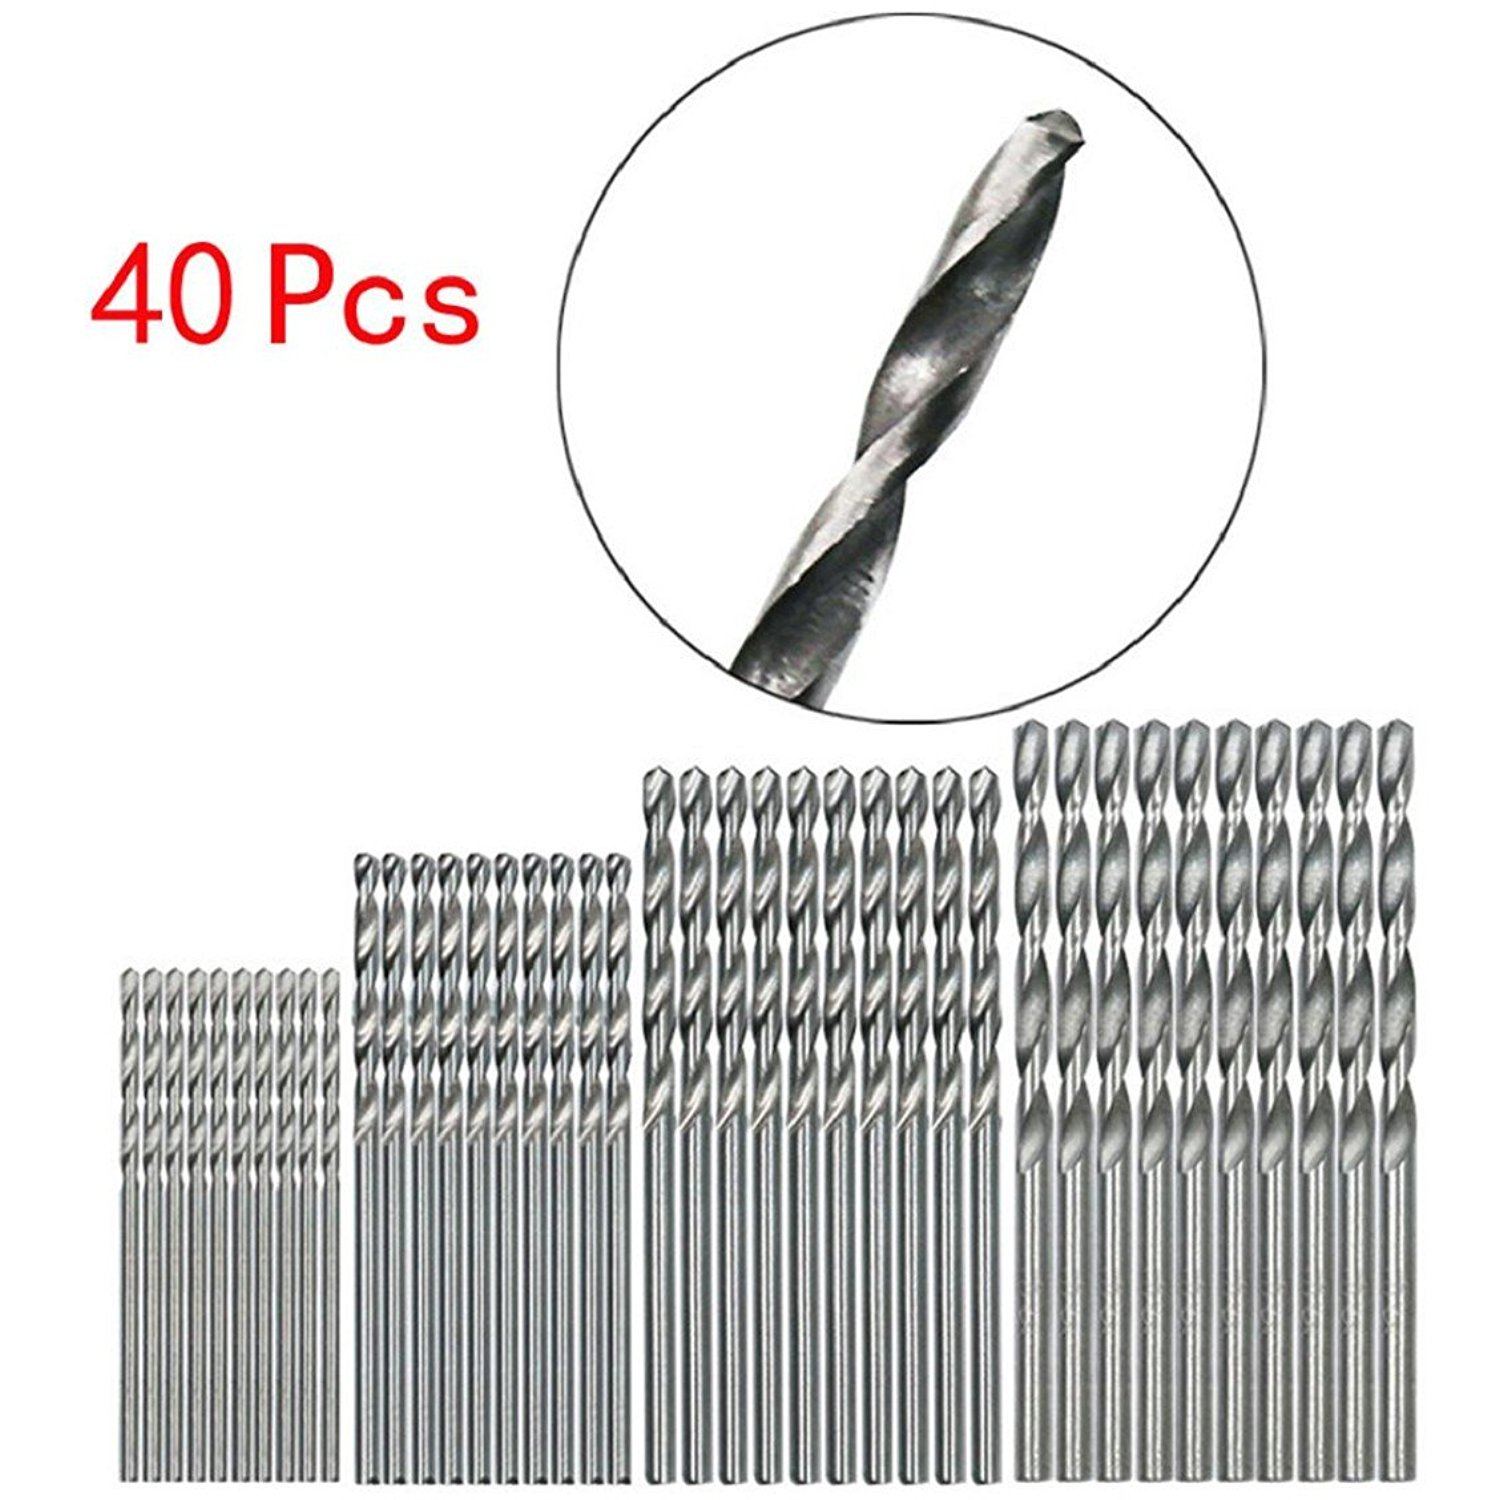 Naladoo New 40 Pcs Mini Drill HSS Bit 0.5mm-2.0mm Straight Shank Pcb Twist Drill Bits Set